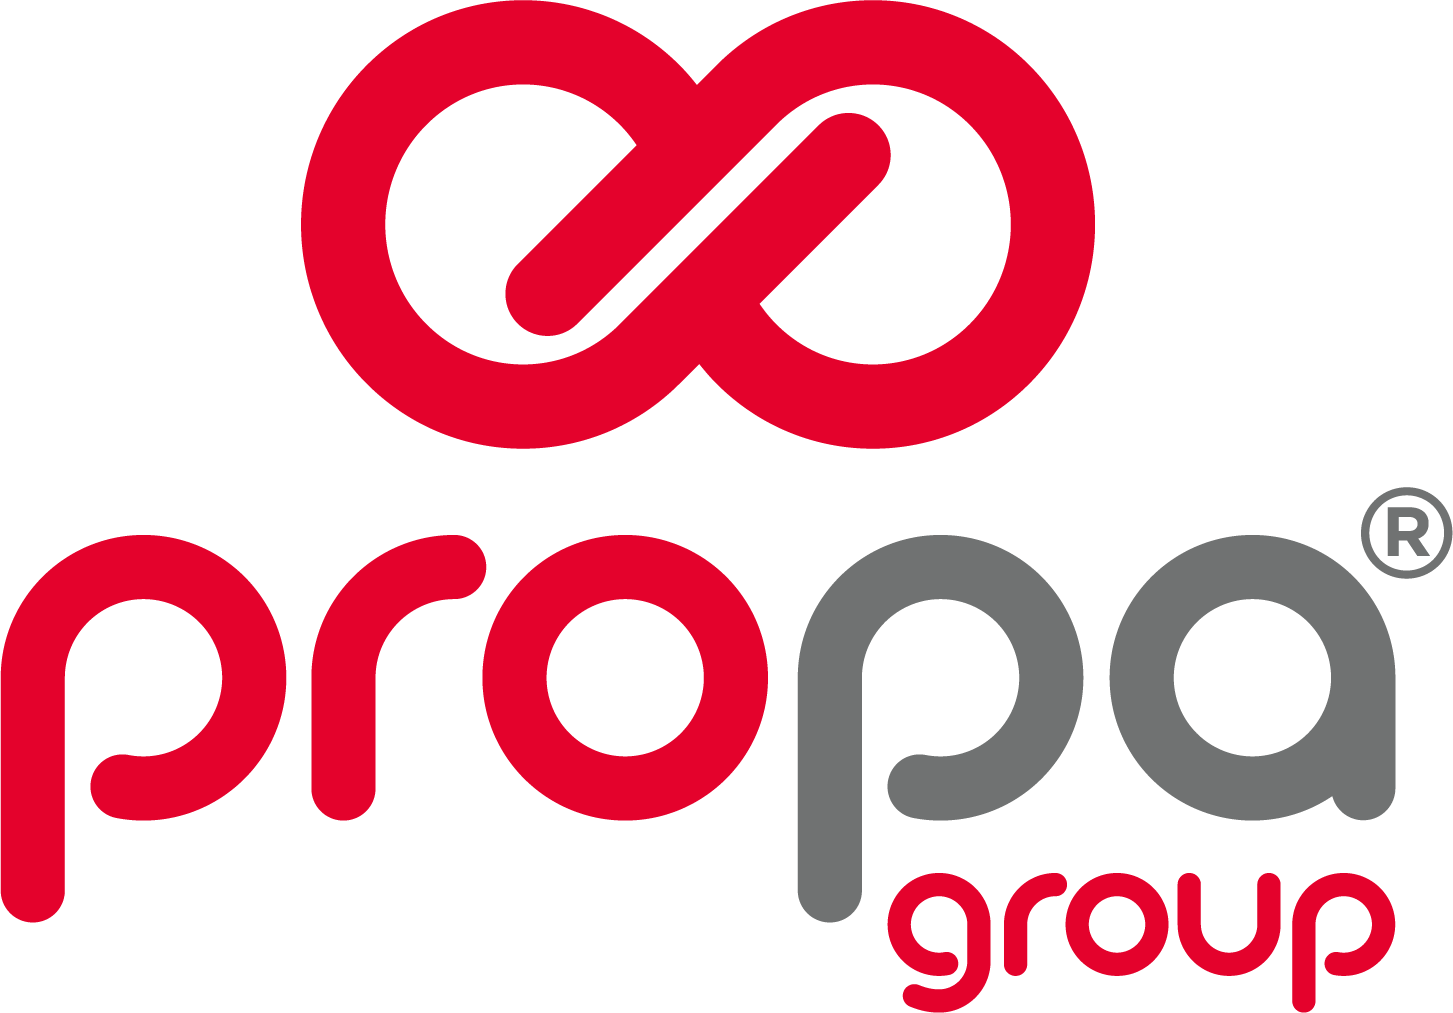 PROPA GROUP